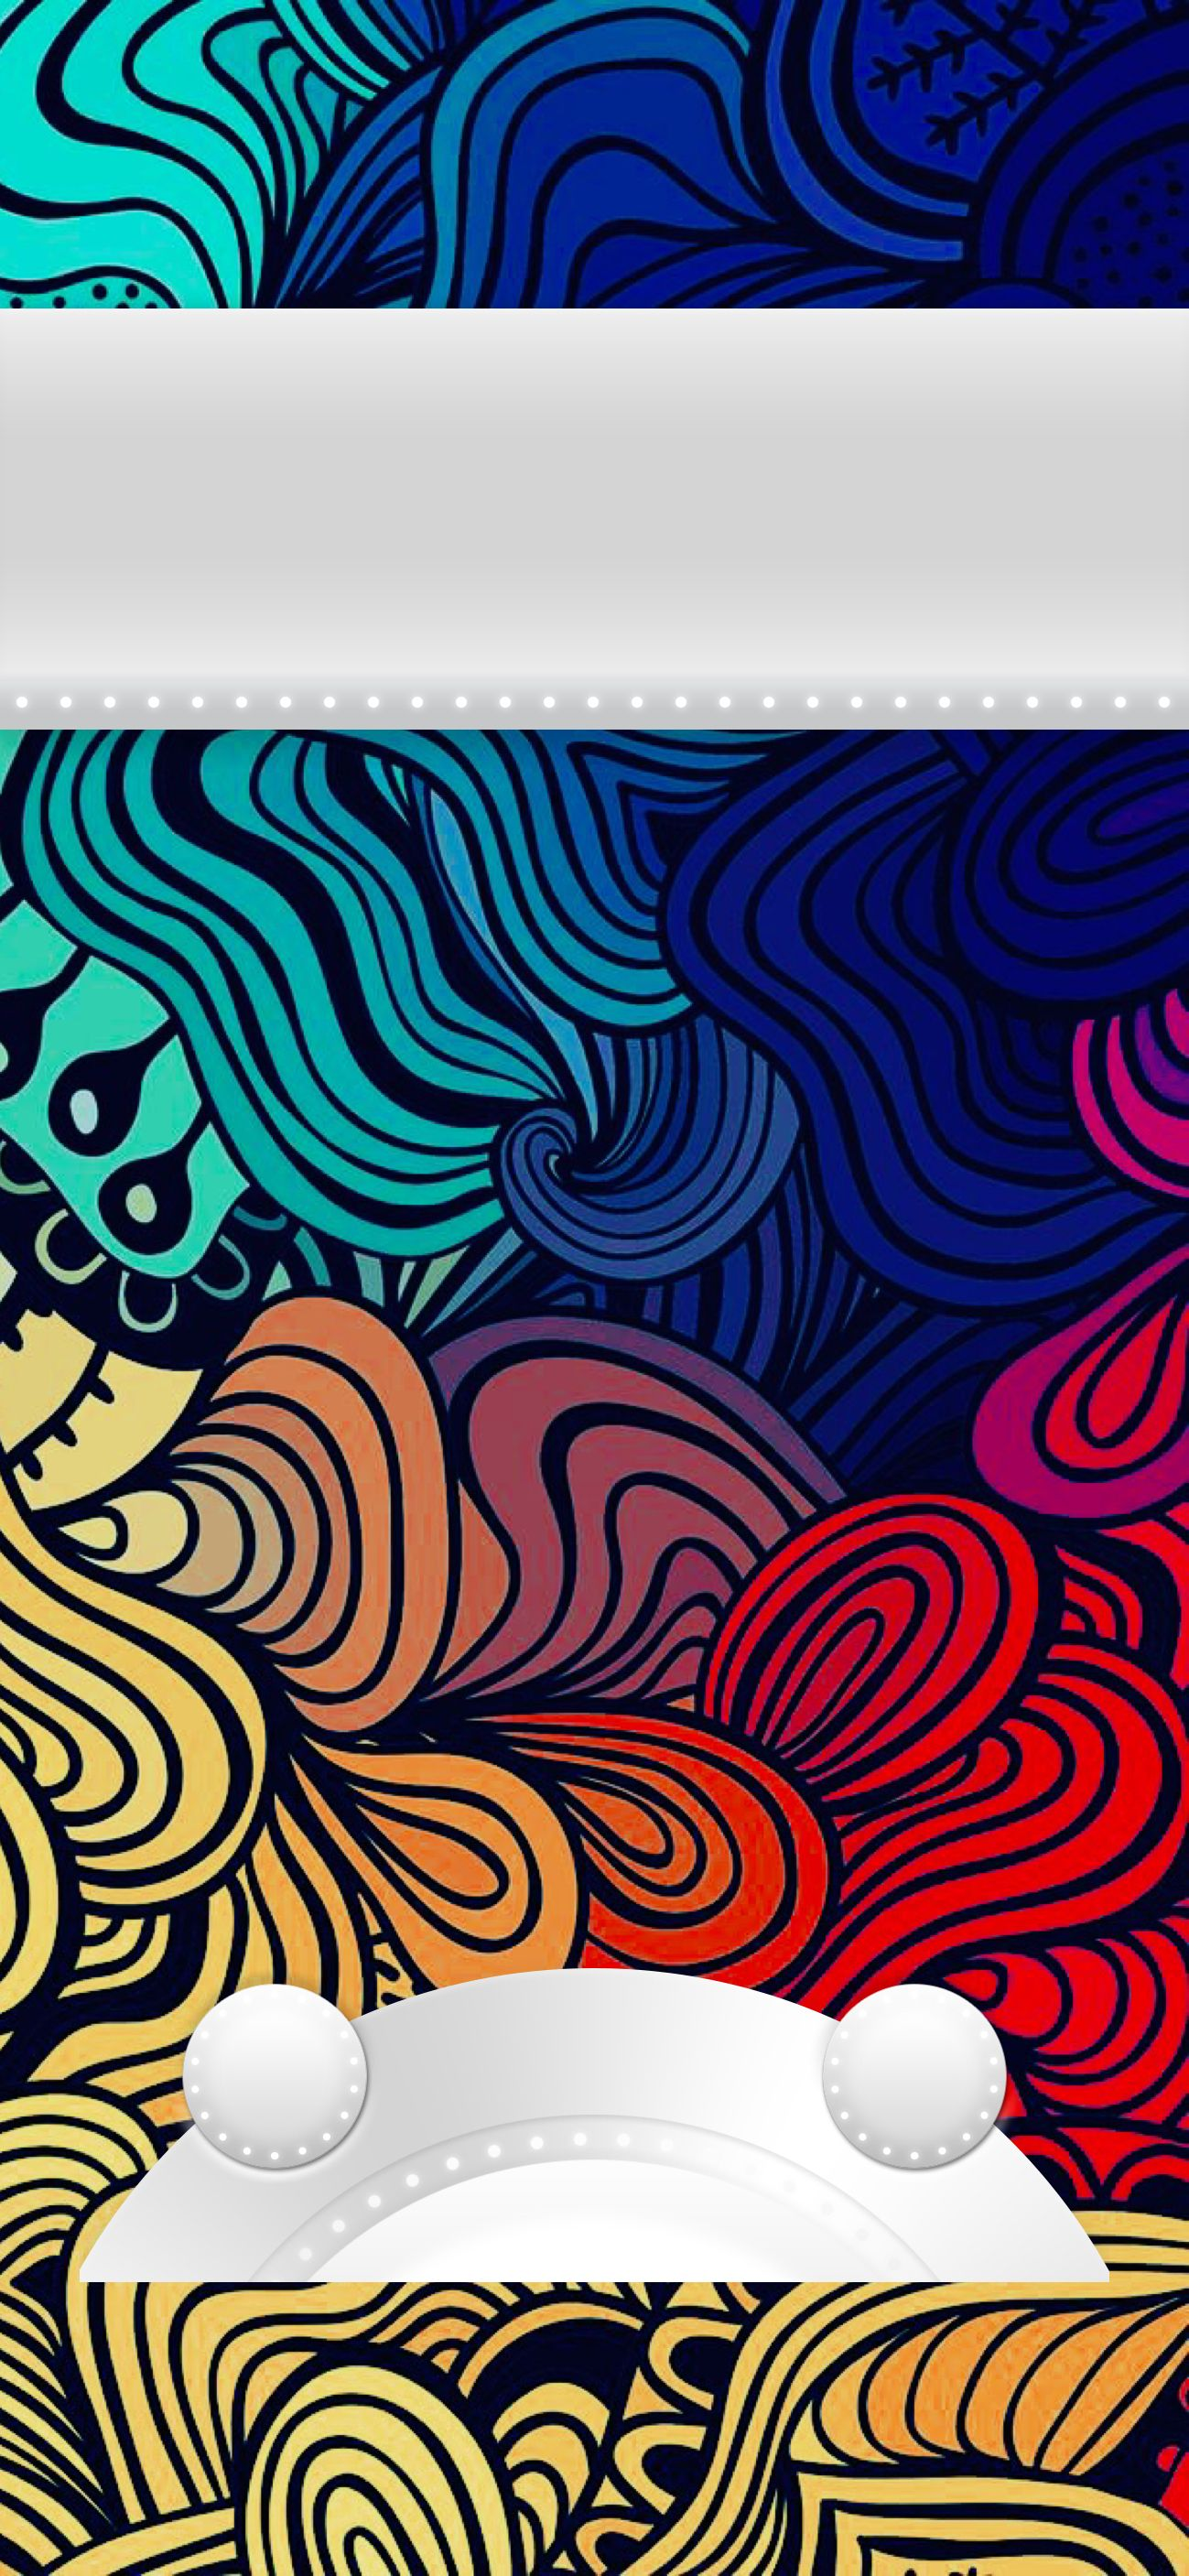 Pin by Phebe Arroyo on iPhone Iphone wallpaper, Abstract